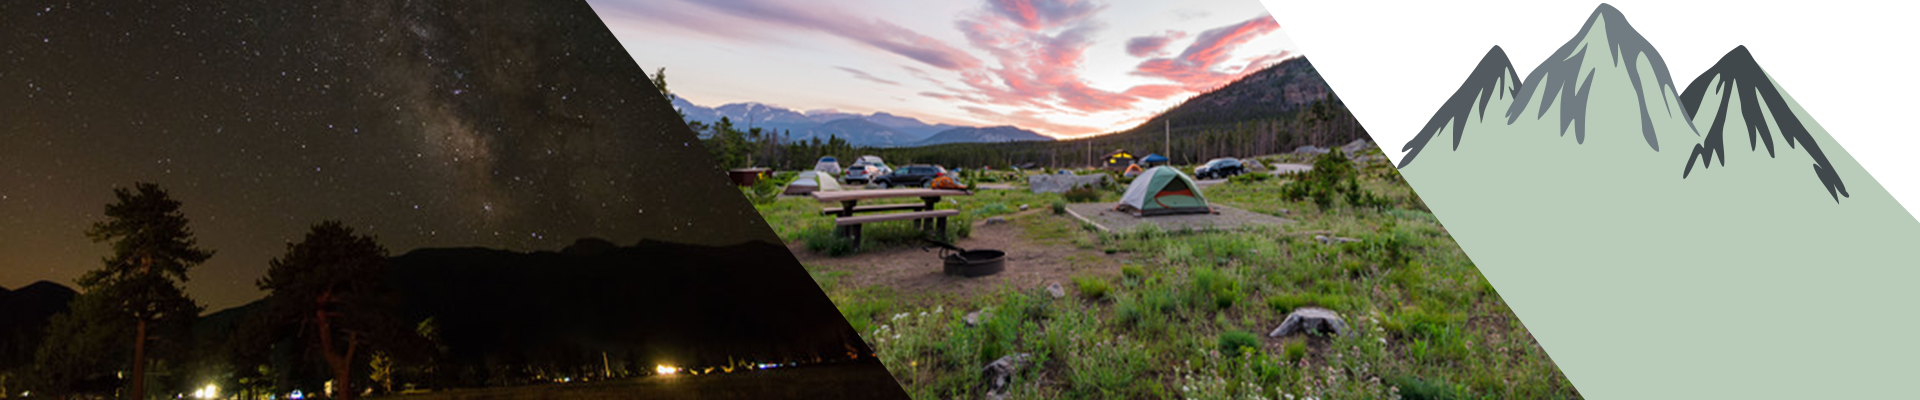 Glacier Basin Campground in the Rocky Mountain National Park.